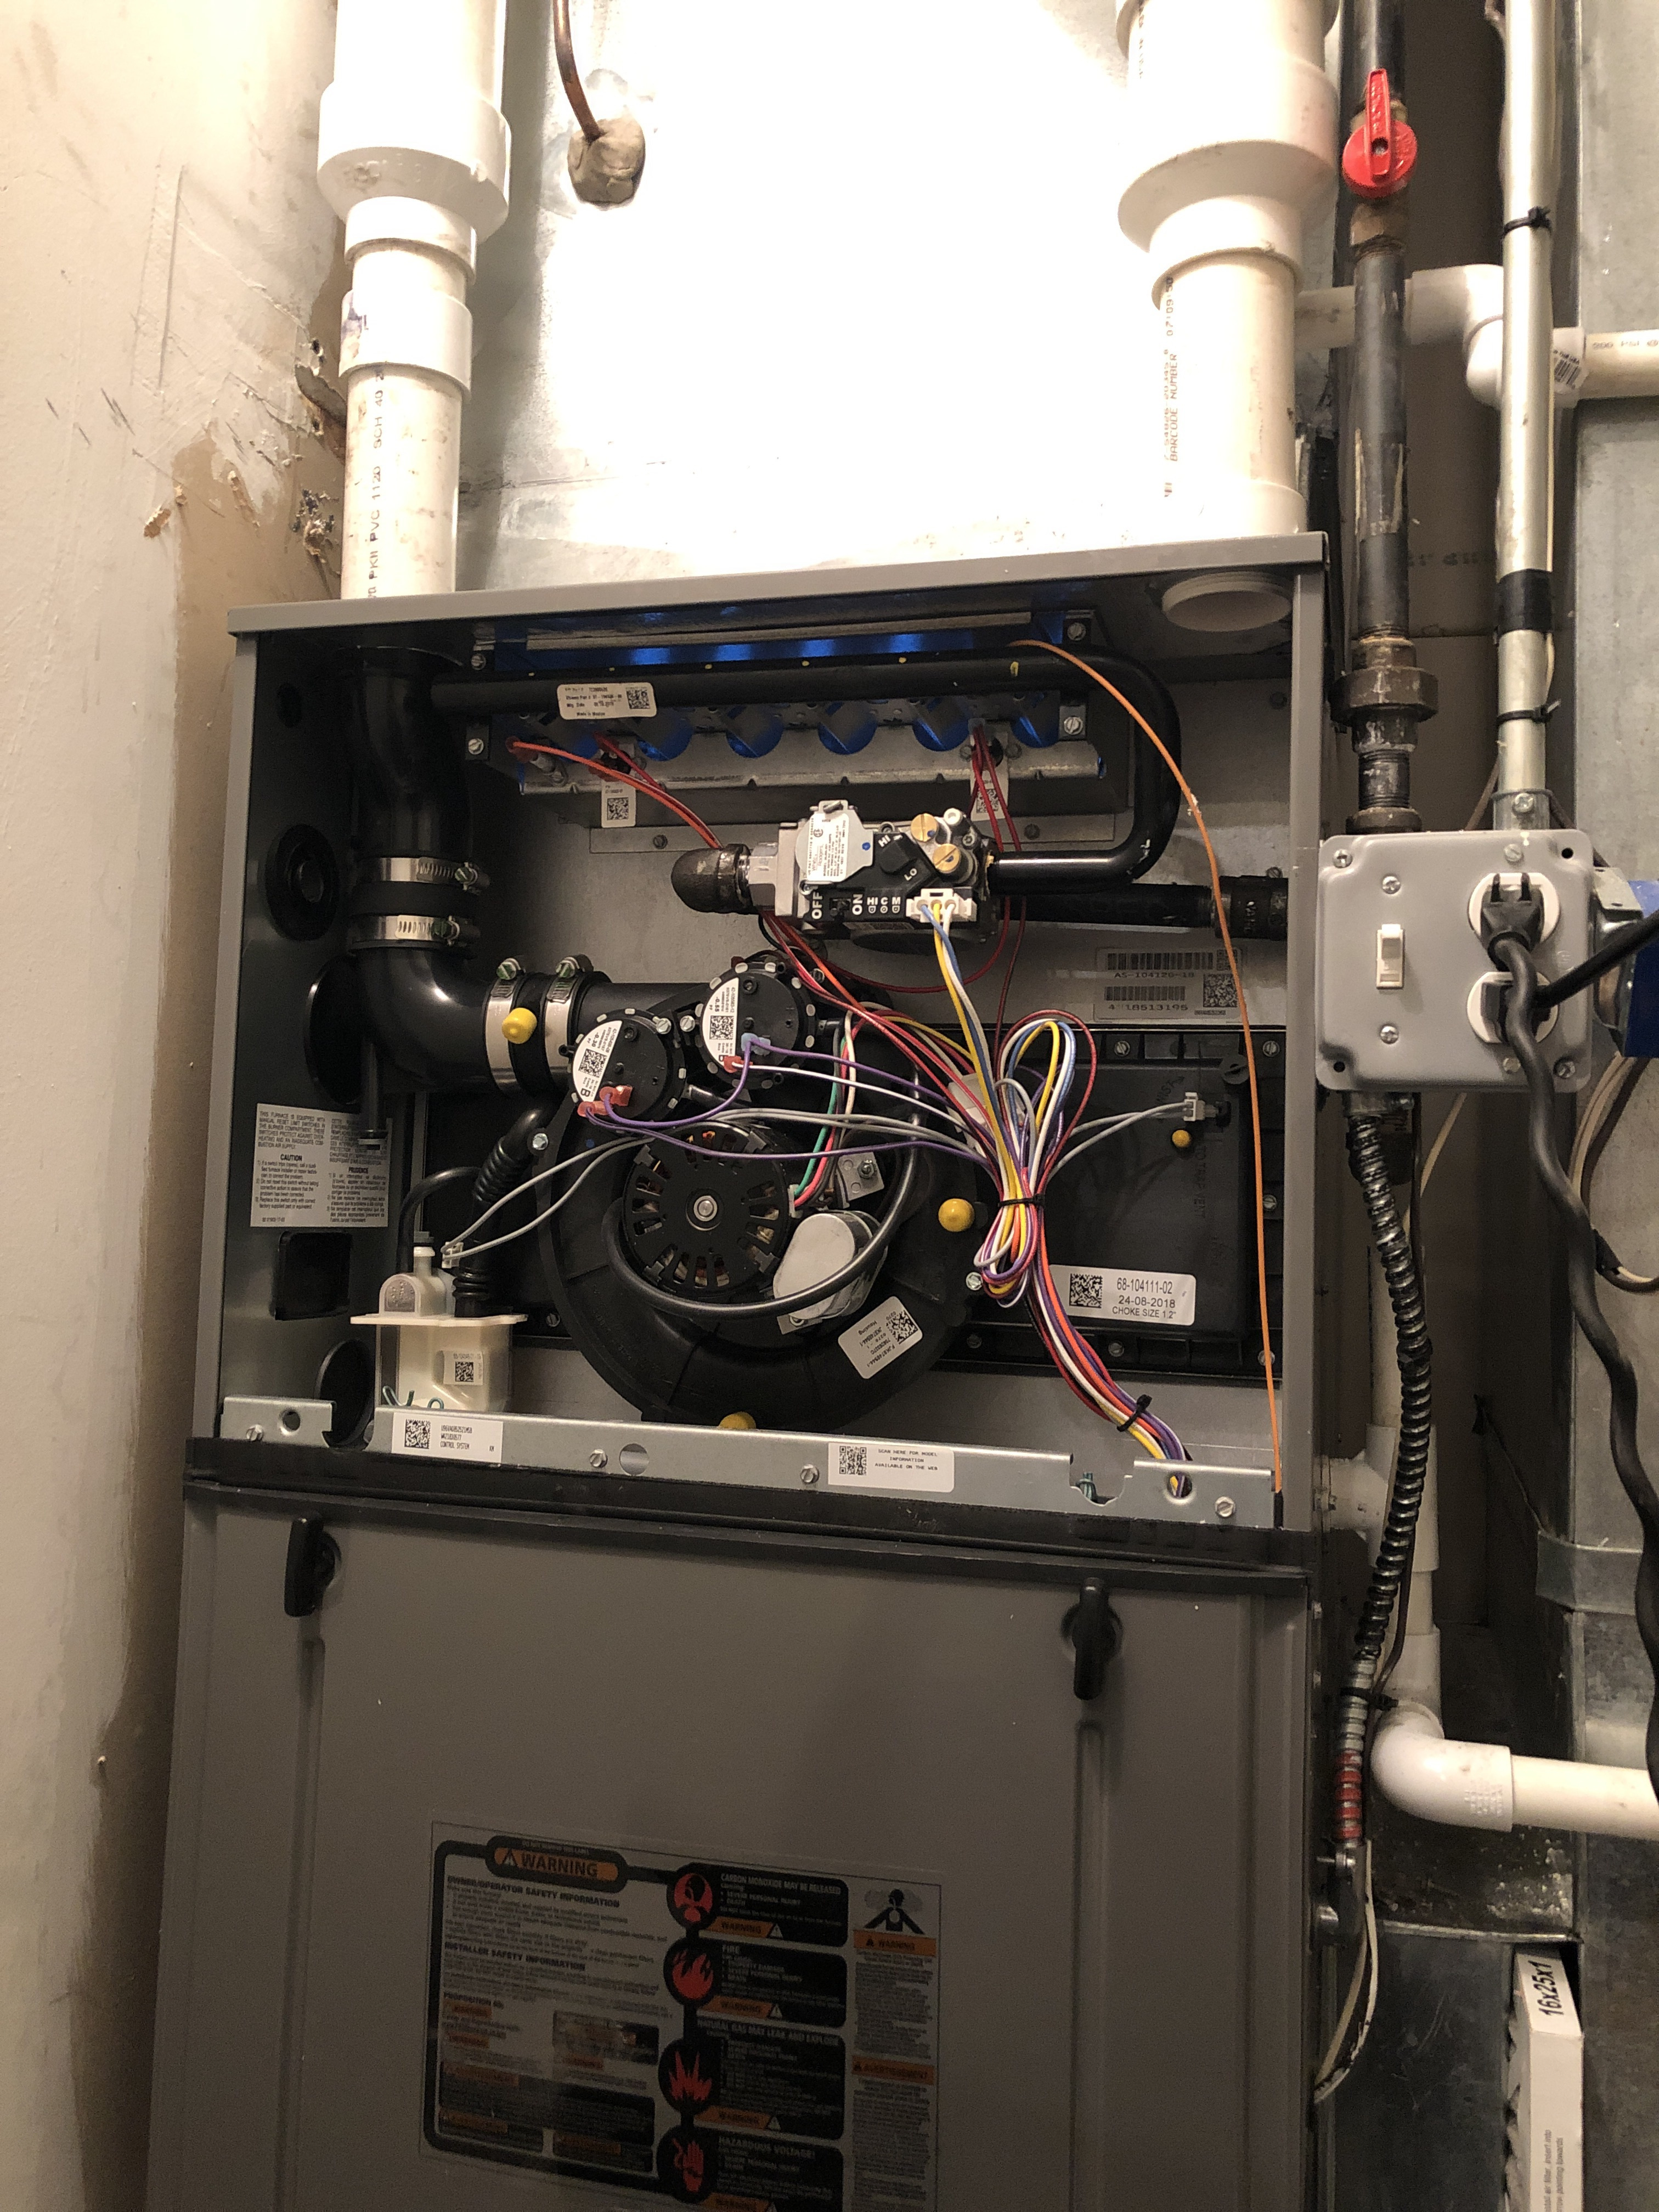 Maintenance Rudd furnace in Chicago